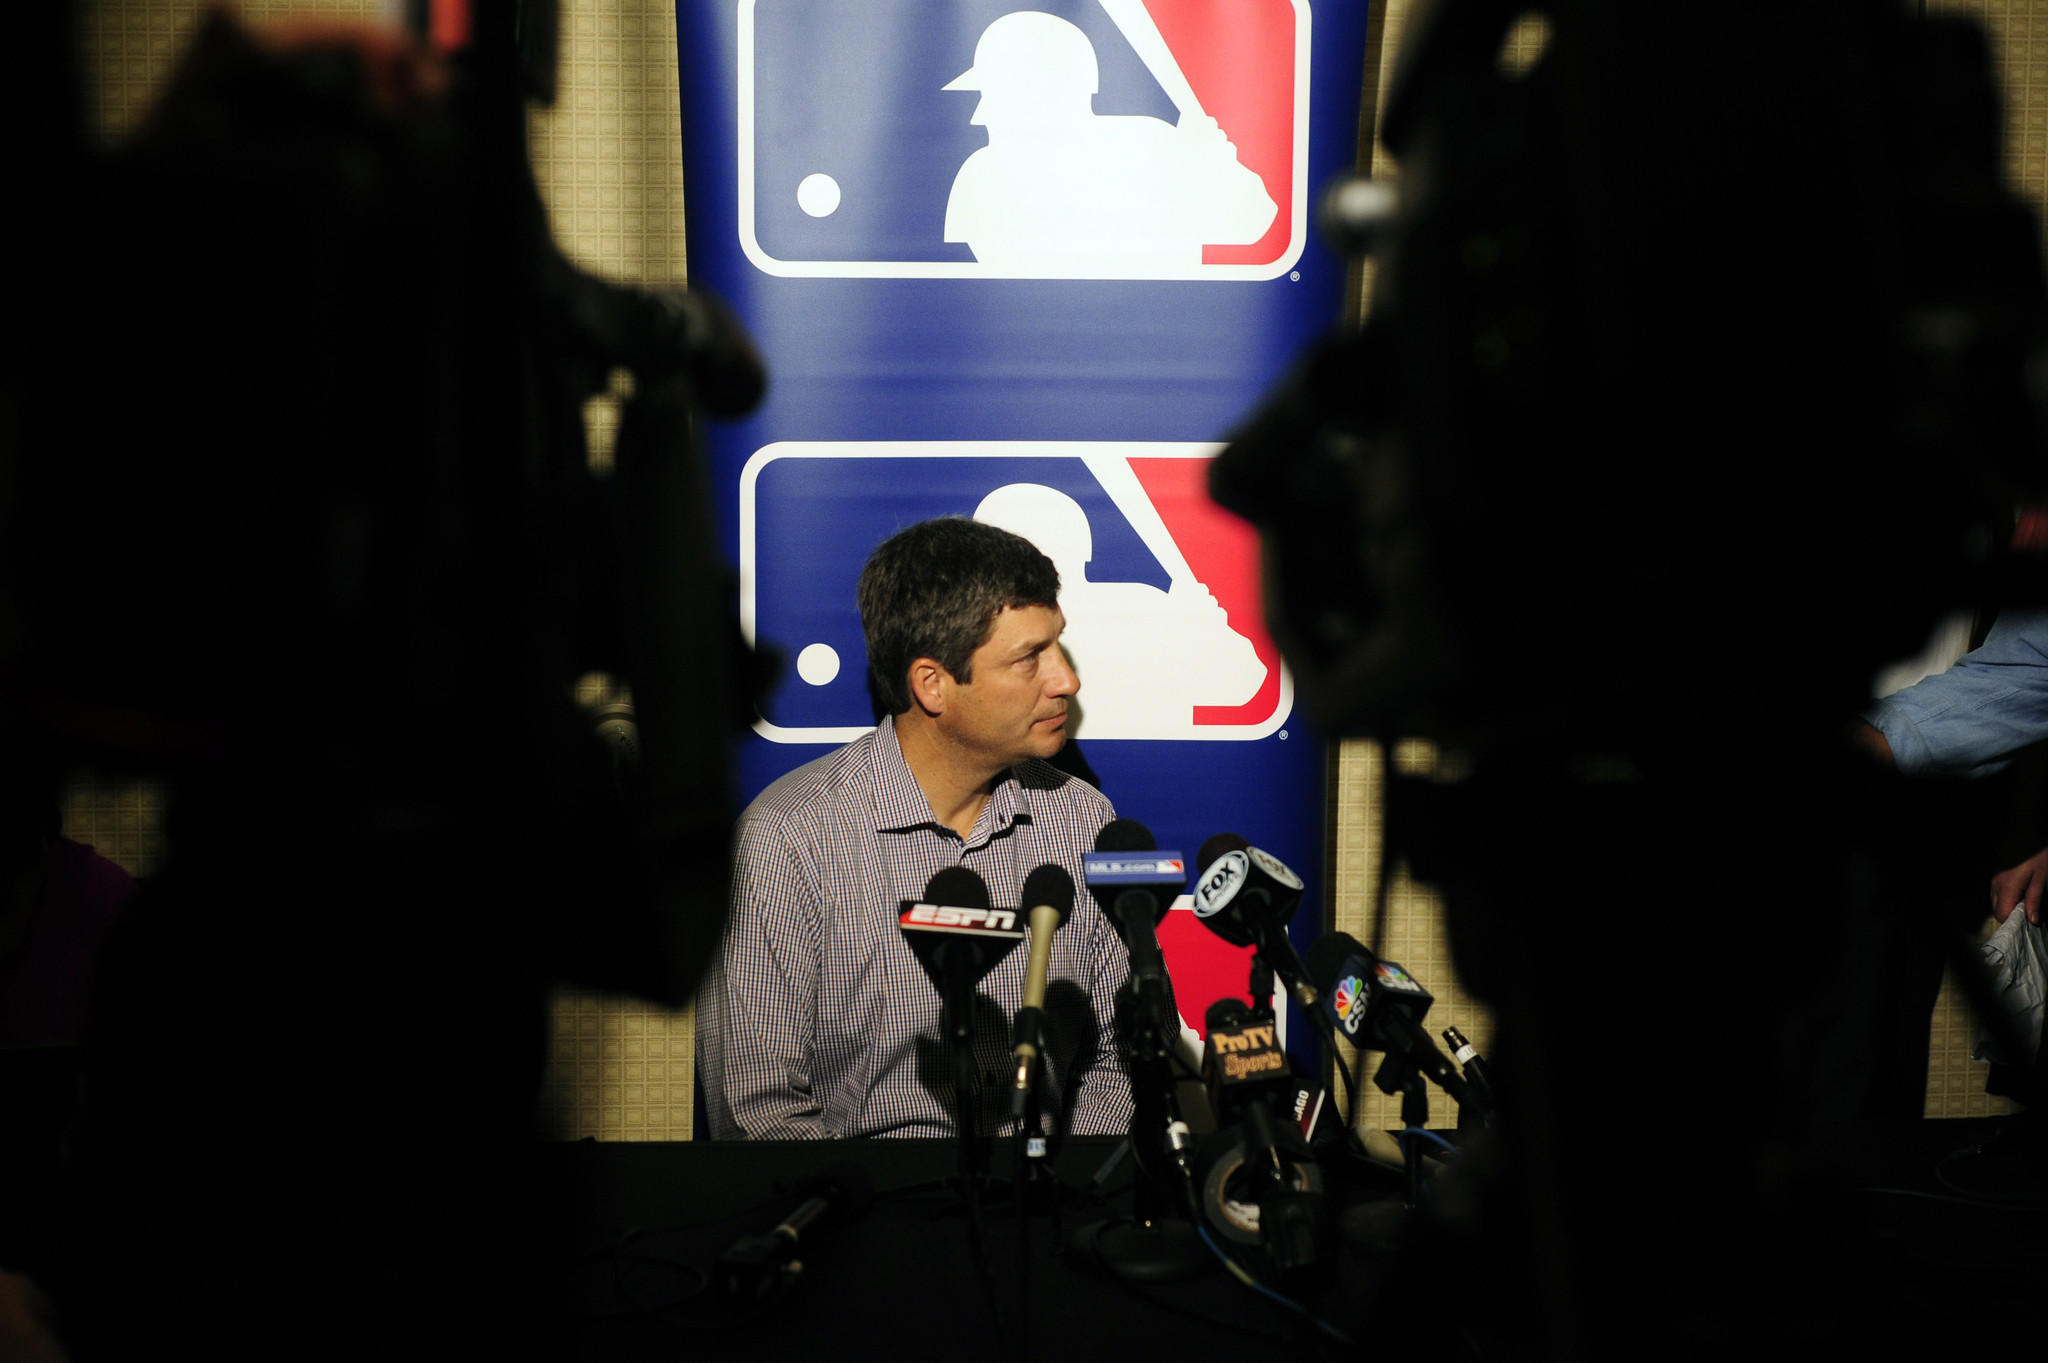 White Sox manager Robin Ventura talks with reporters during the winter meetings.